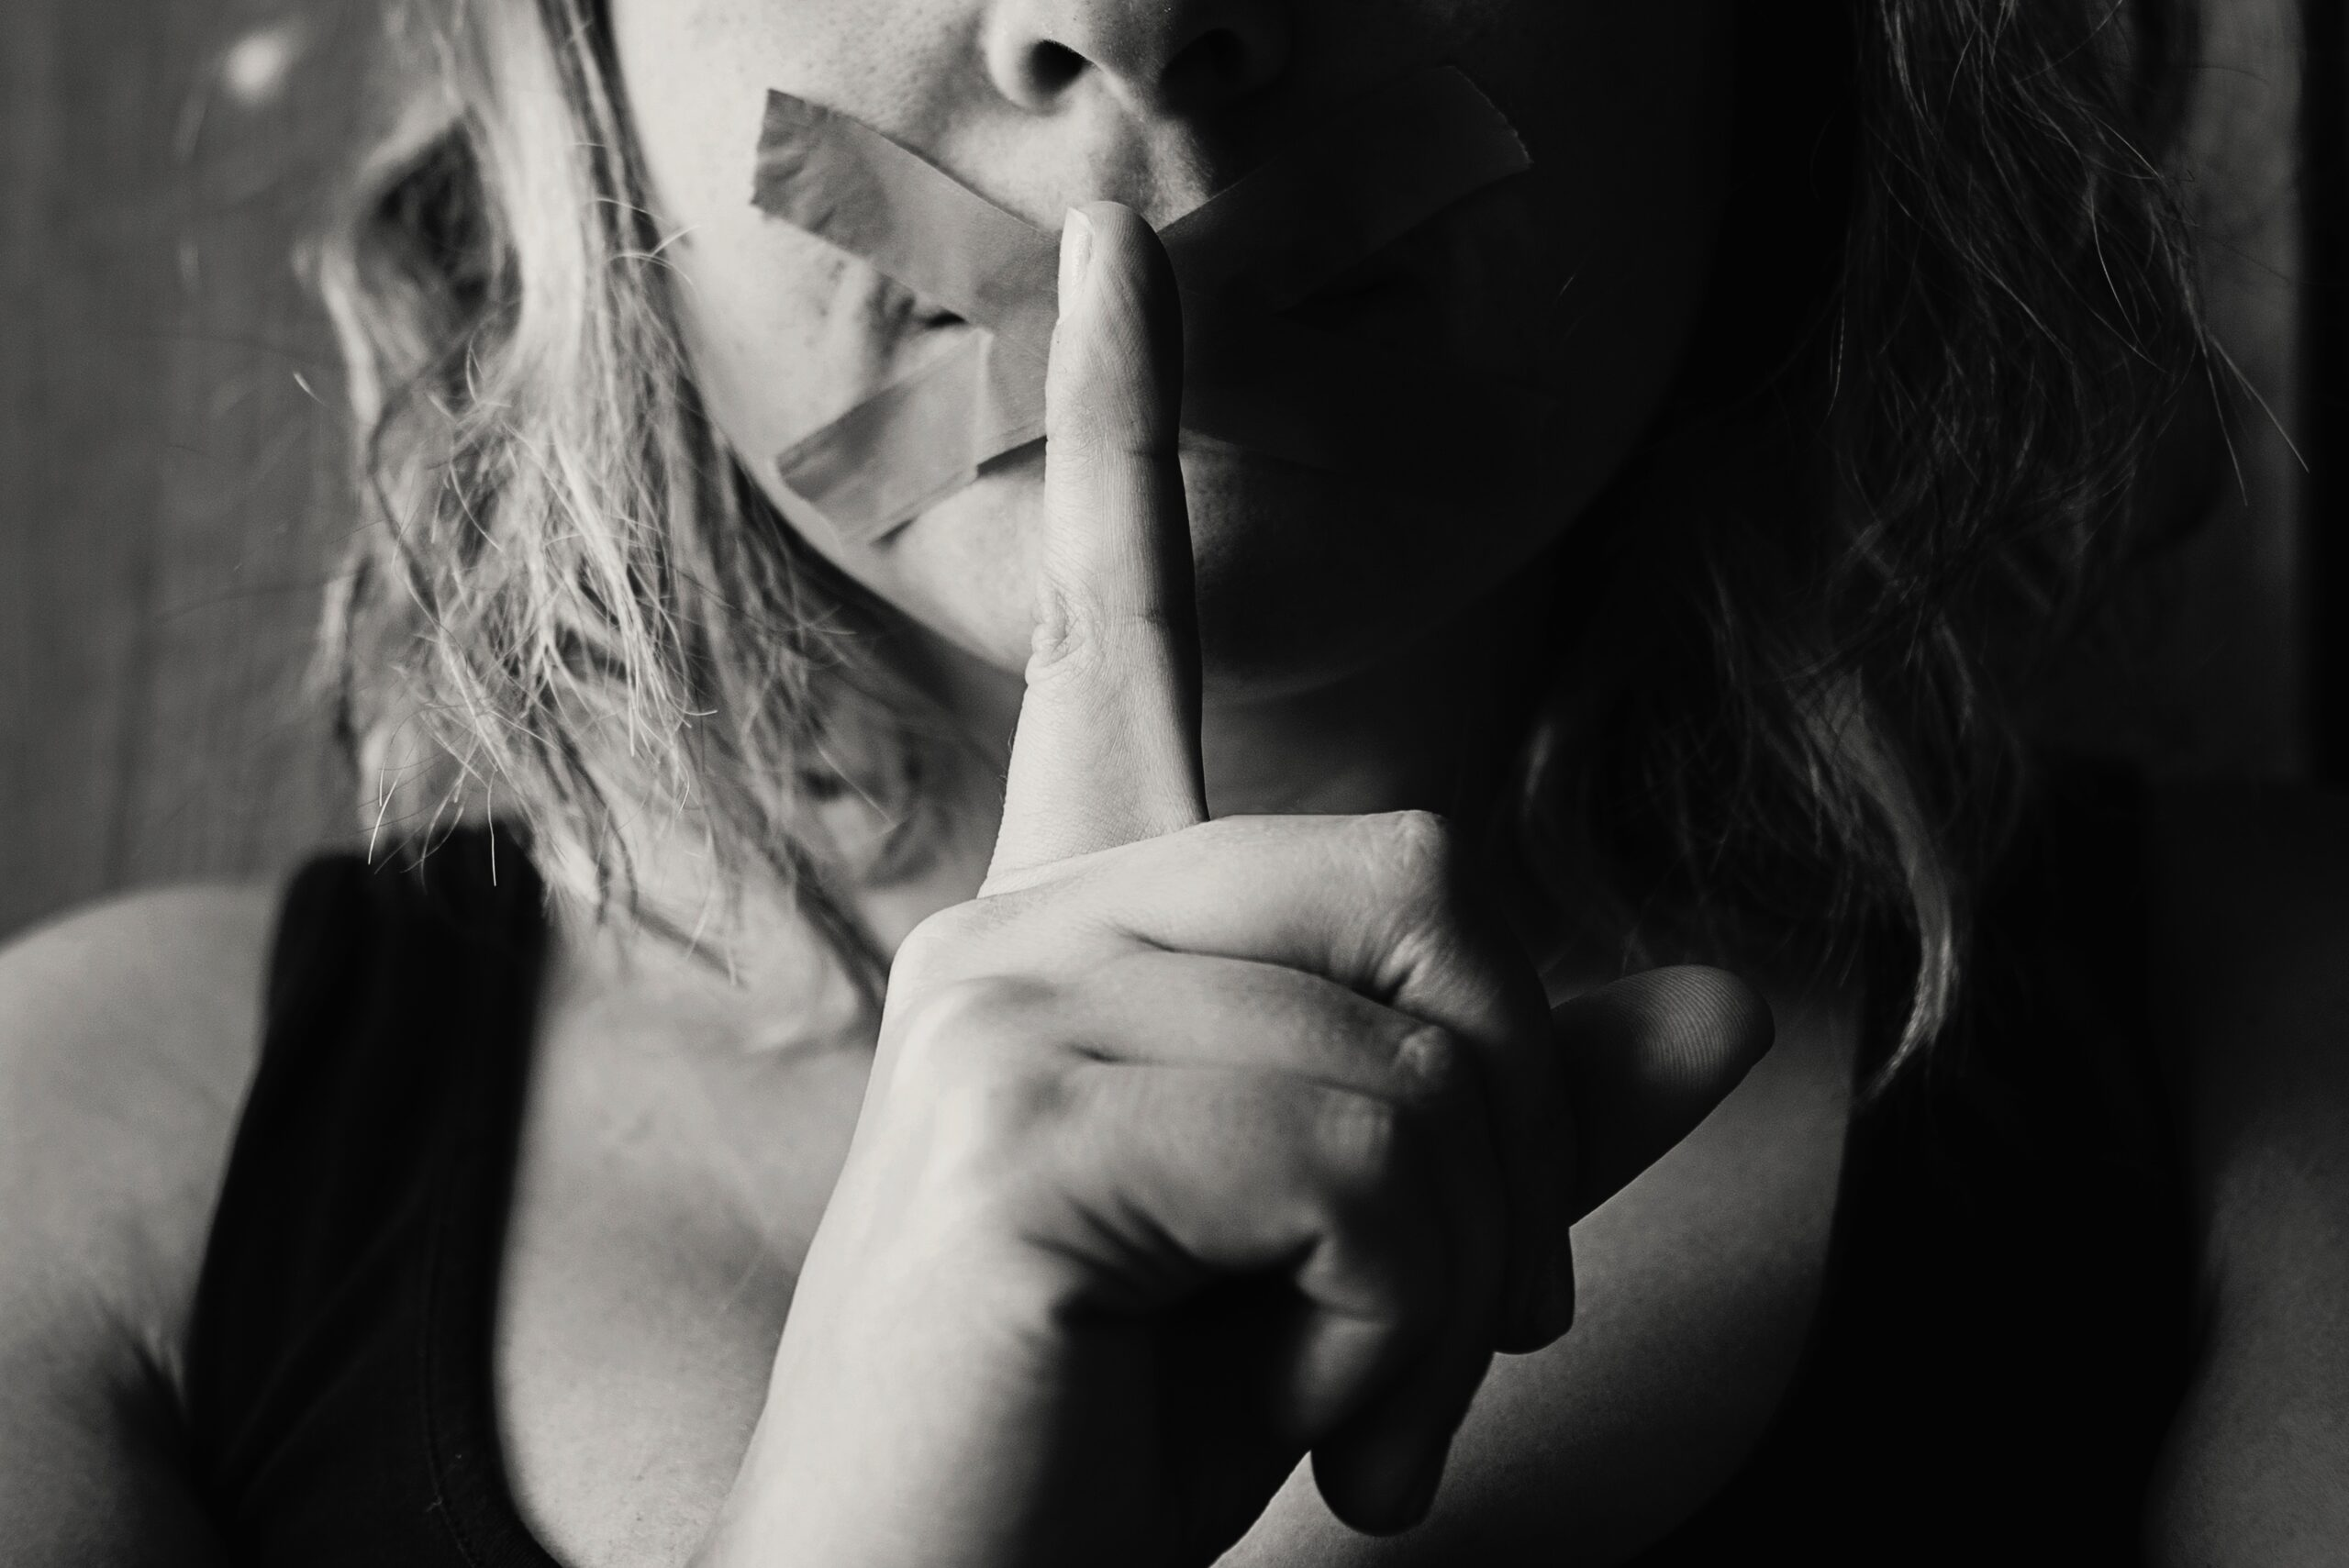 15 Warning Signs Of A Toxic Relationship